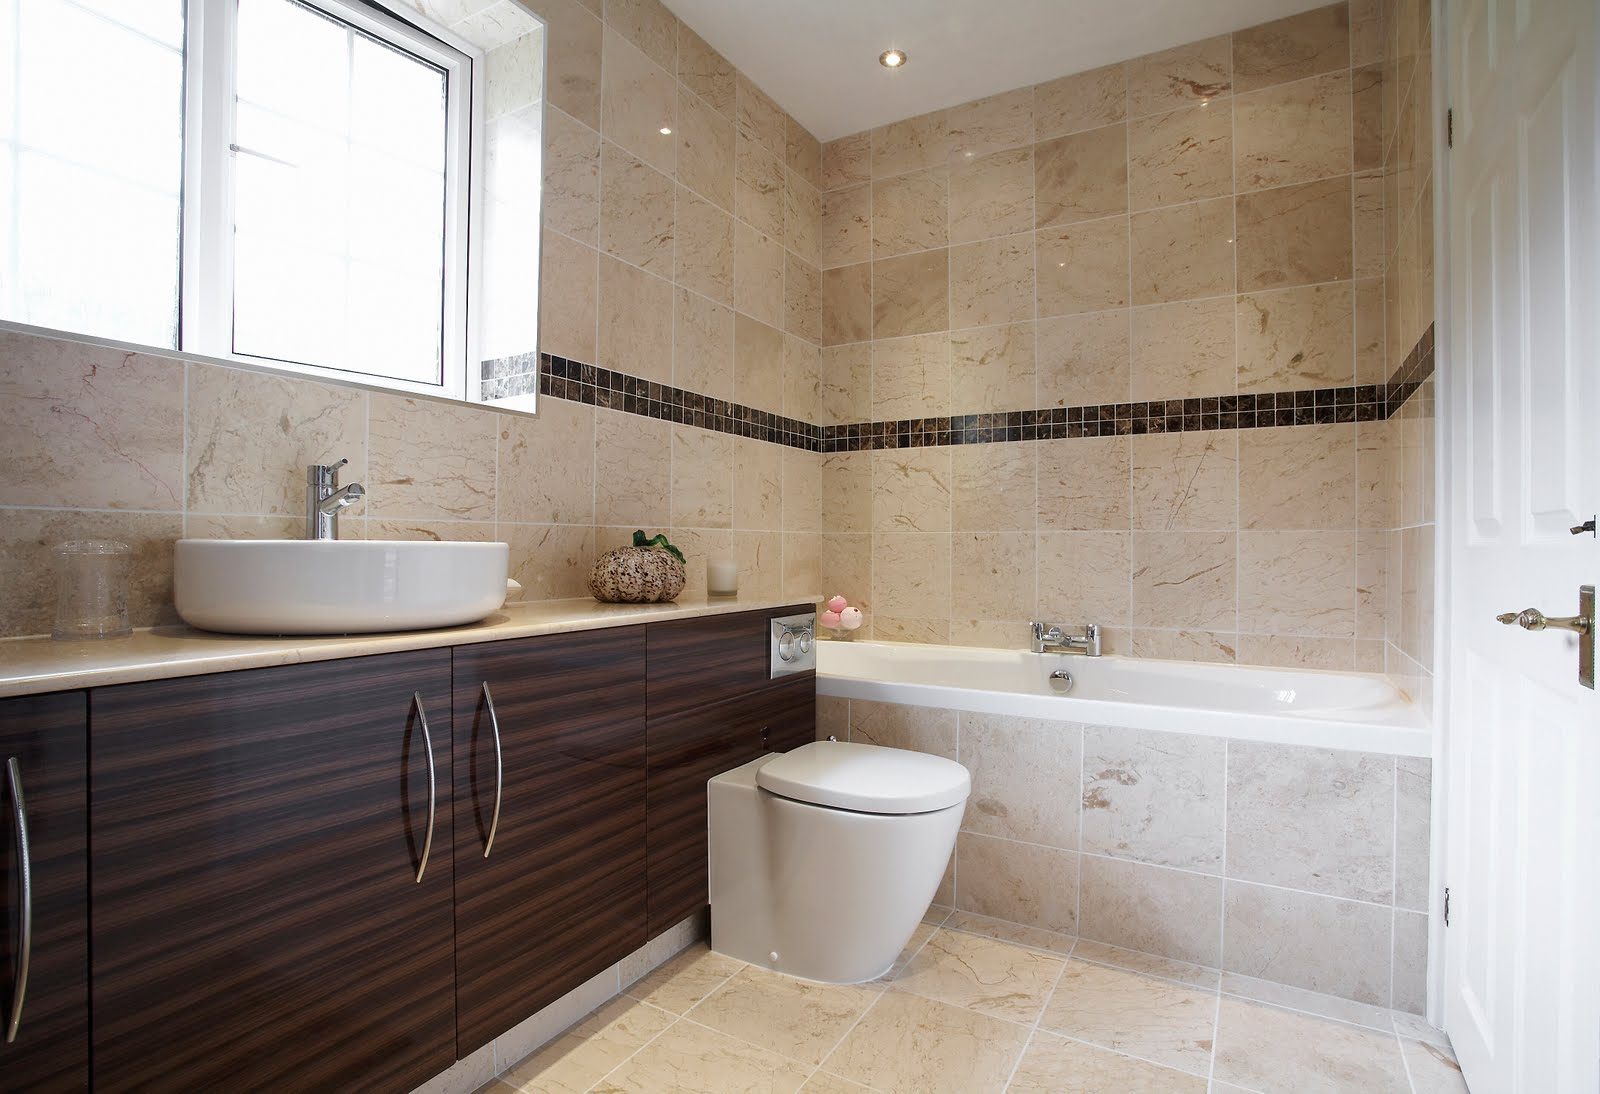 Bathroom Designs Images Cymru Kitchens Ltd Cymru Kitchens Bathrooms